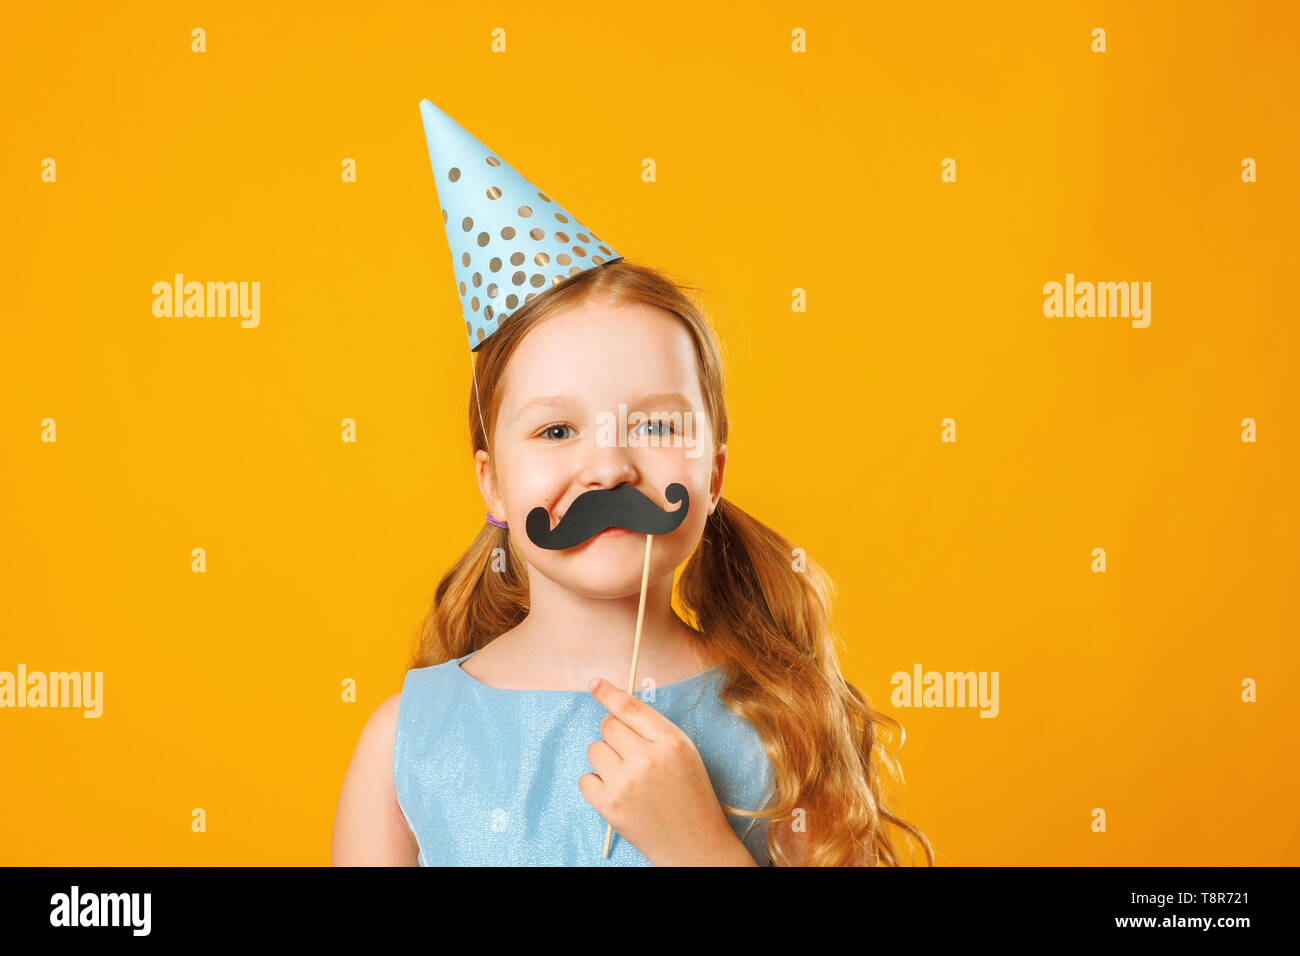 Happy father's day. Funny little girl with fake mustache on yellow background. Family concept. - Stock Image